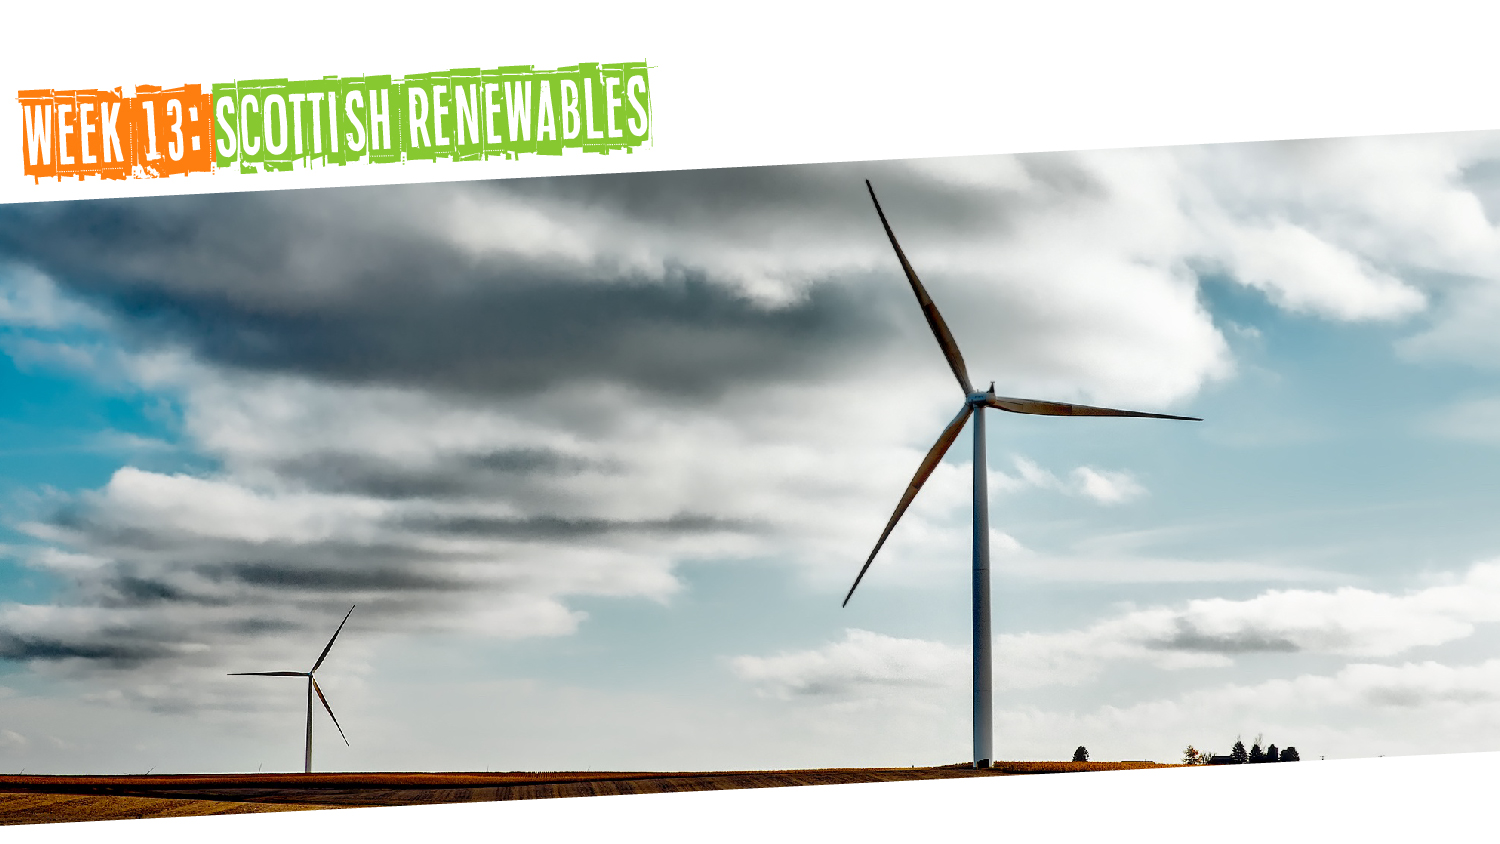 IYM Week 13: Scottish Renewables